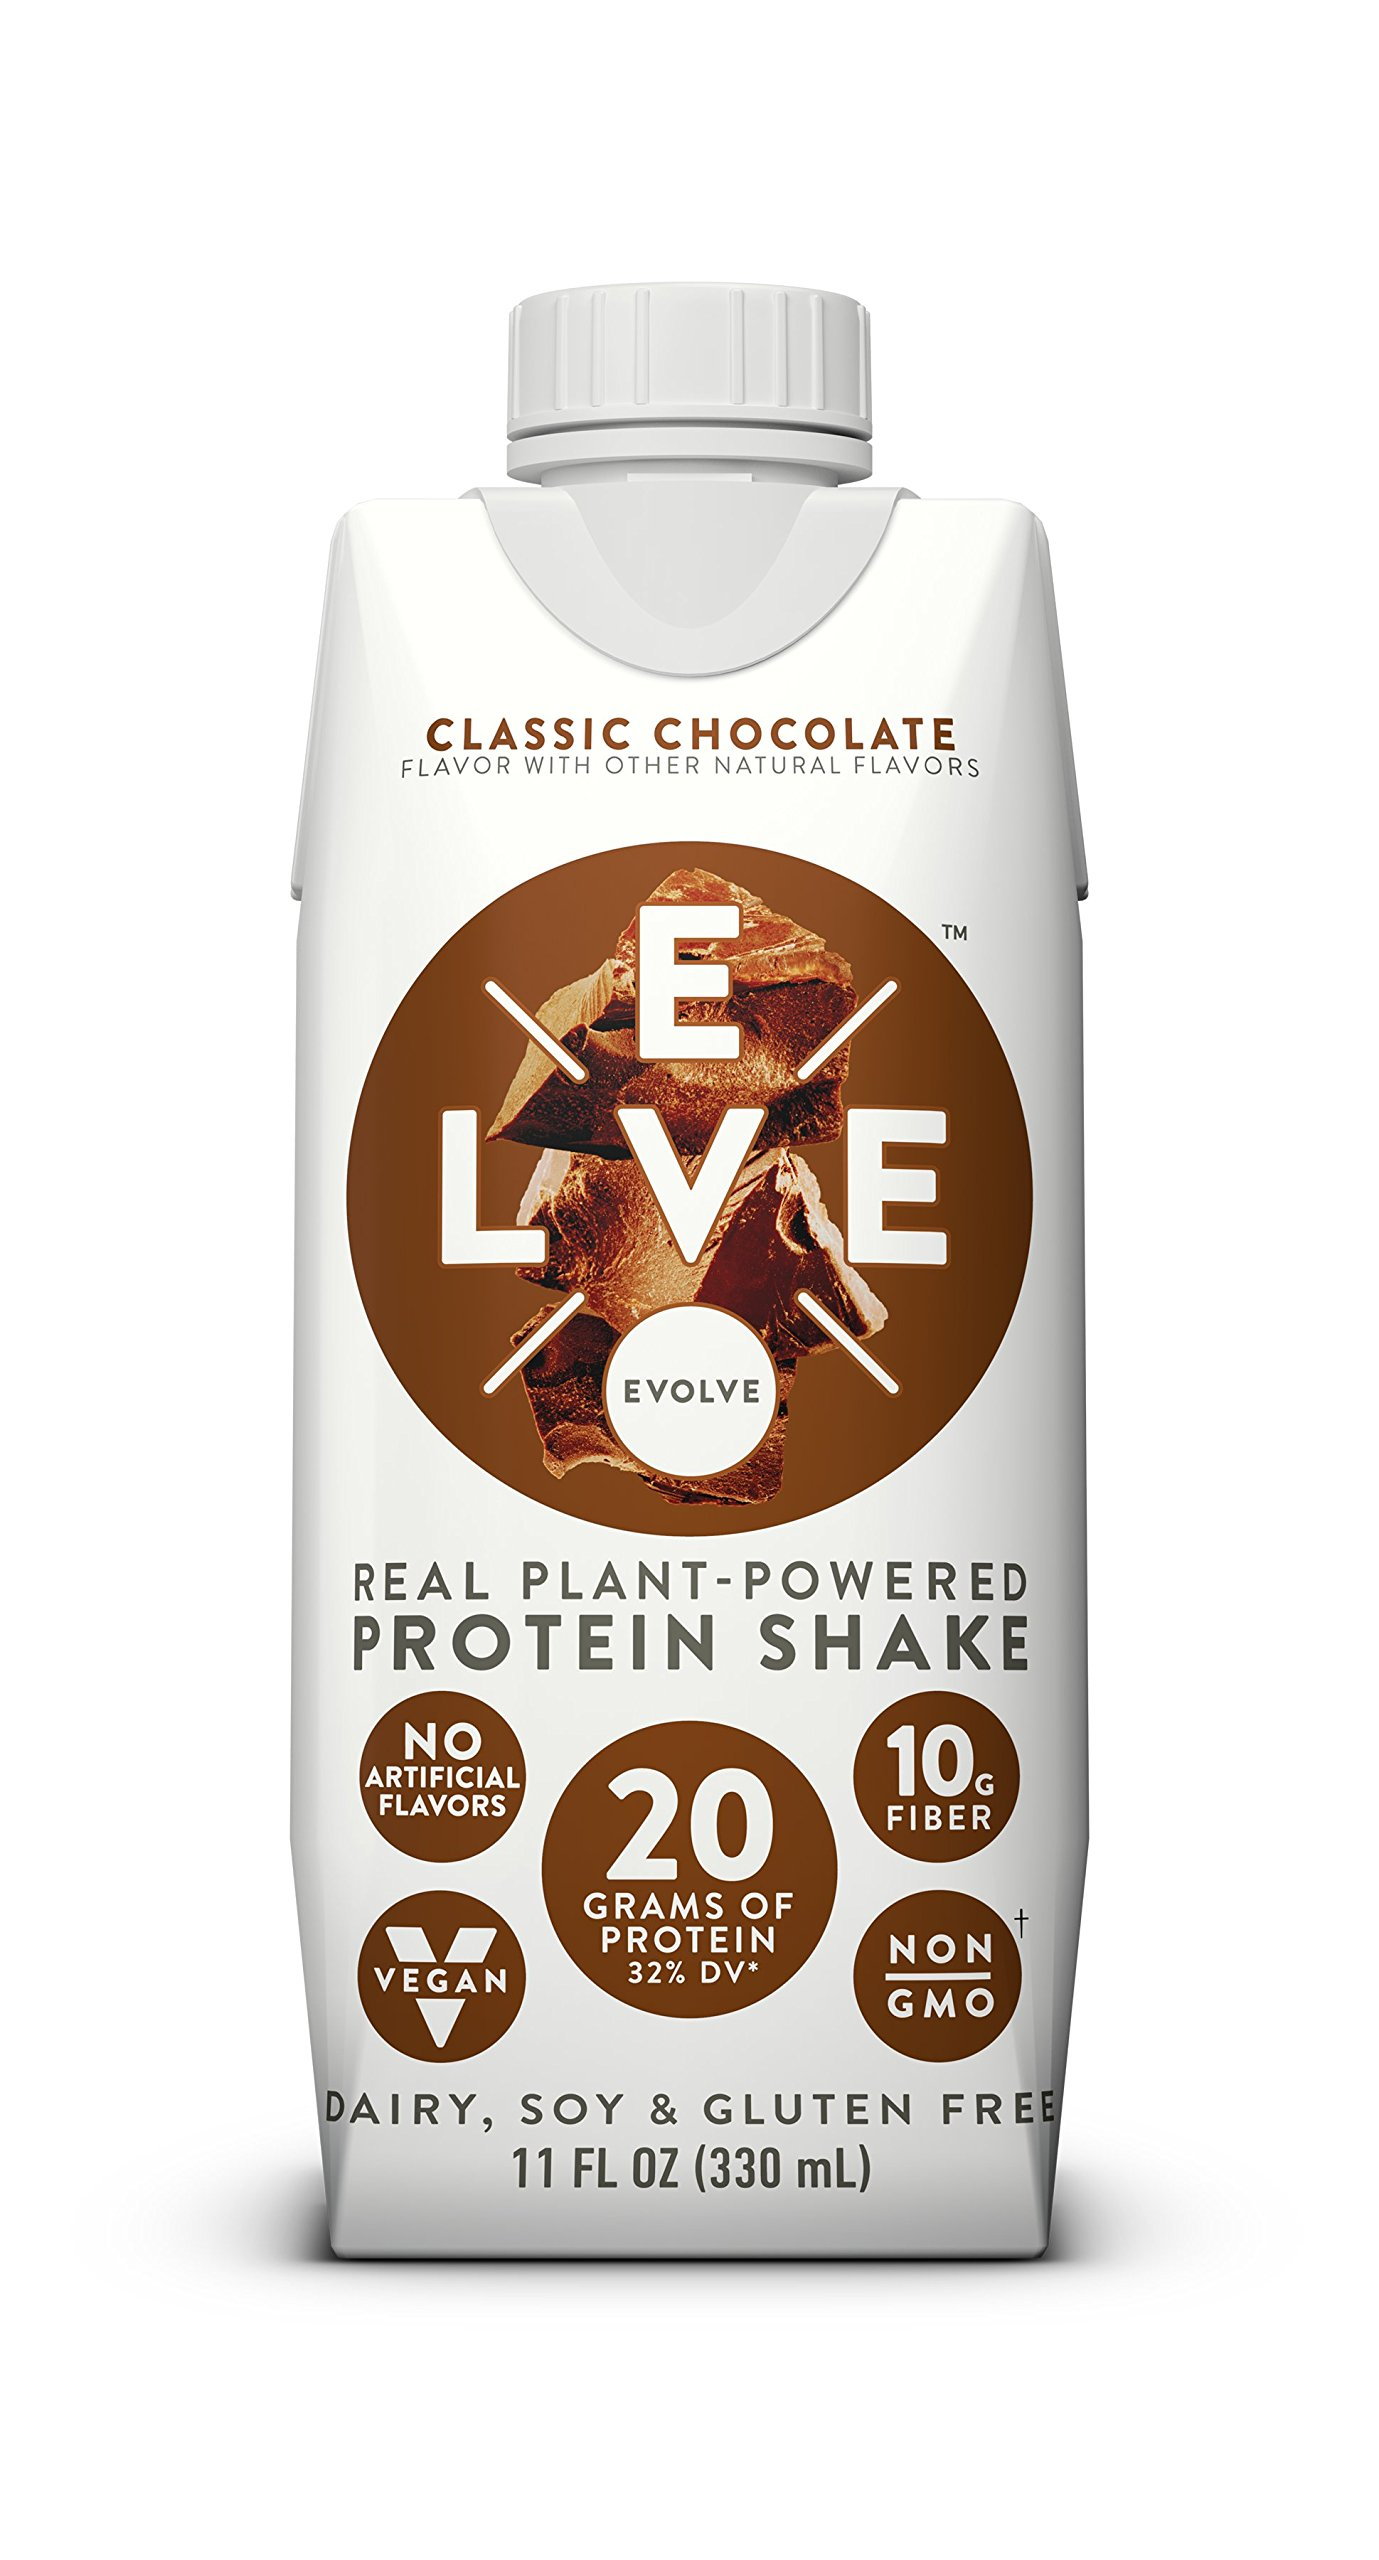 Evolve Protein Shake, Classic Chocolate, 20g Protein, 11 FL OZ, 12 count